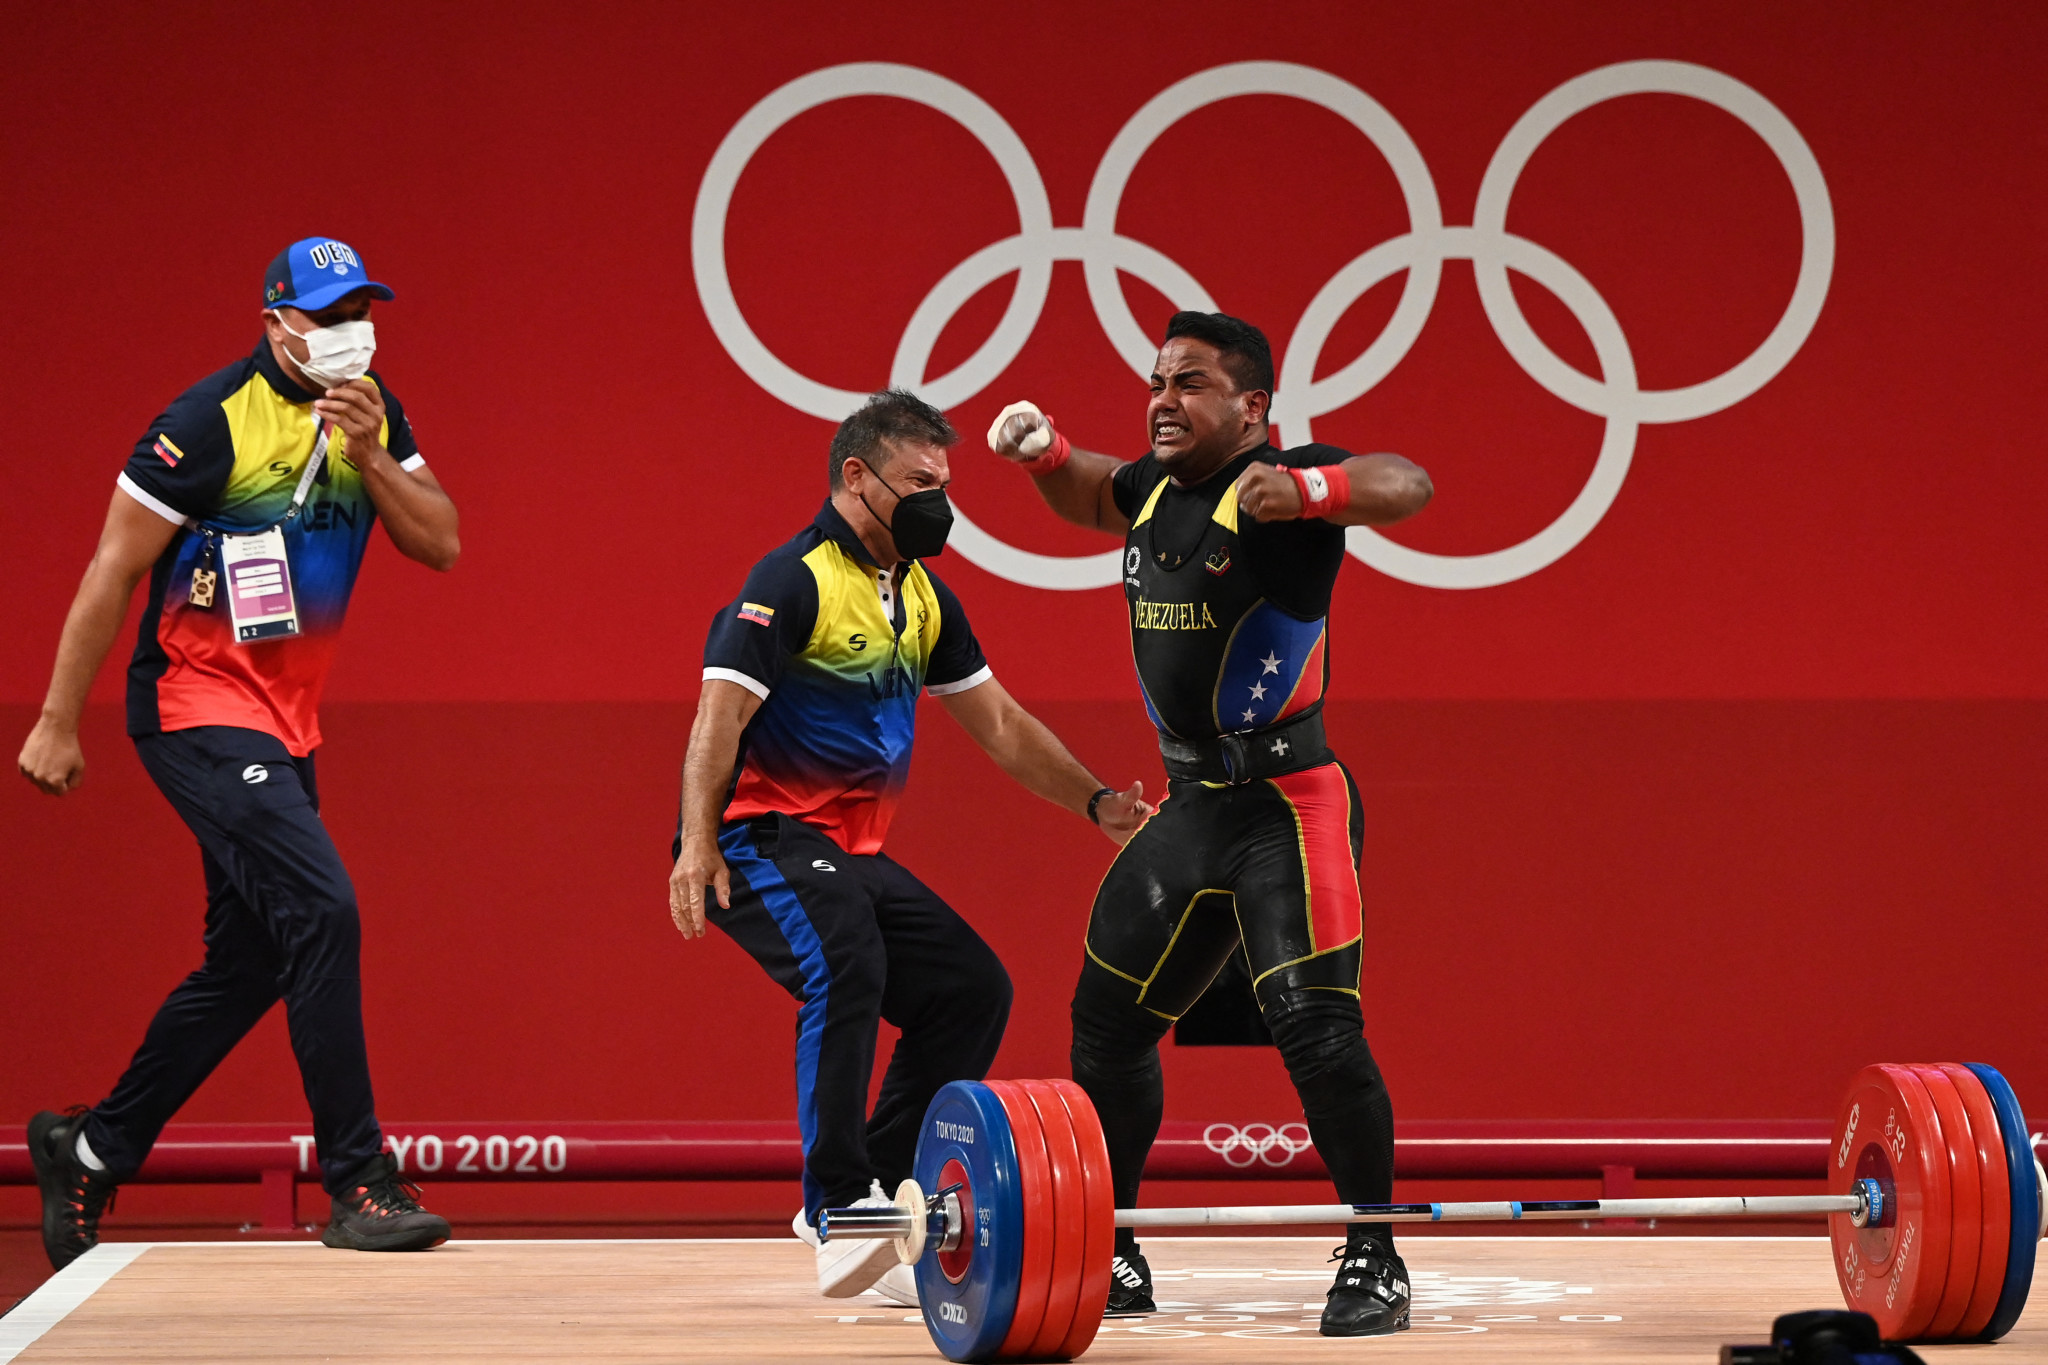 Keydomar Vallenilla celebrated wildly with his coaches before realising the 216kg lift did not count ©Getty Images